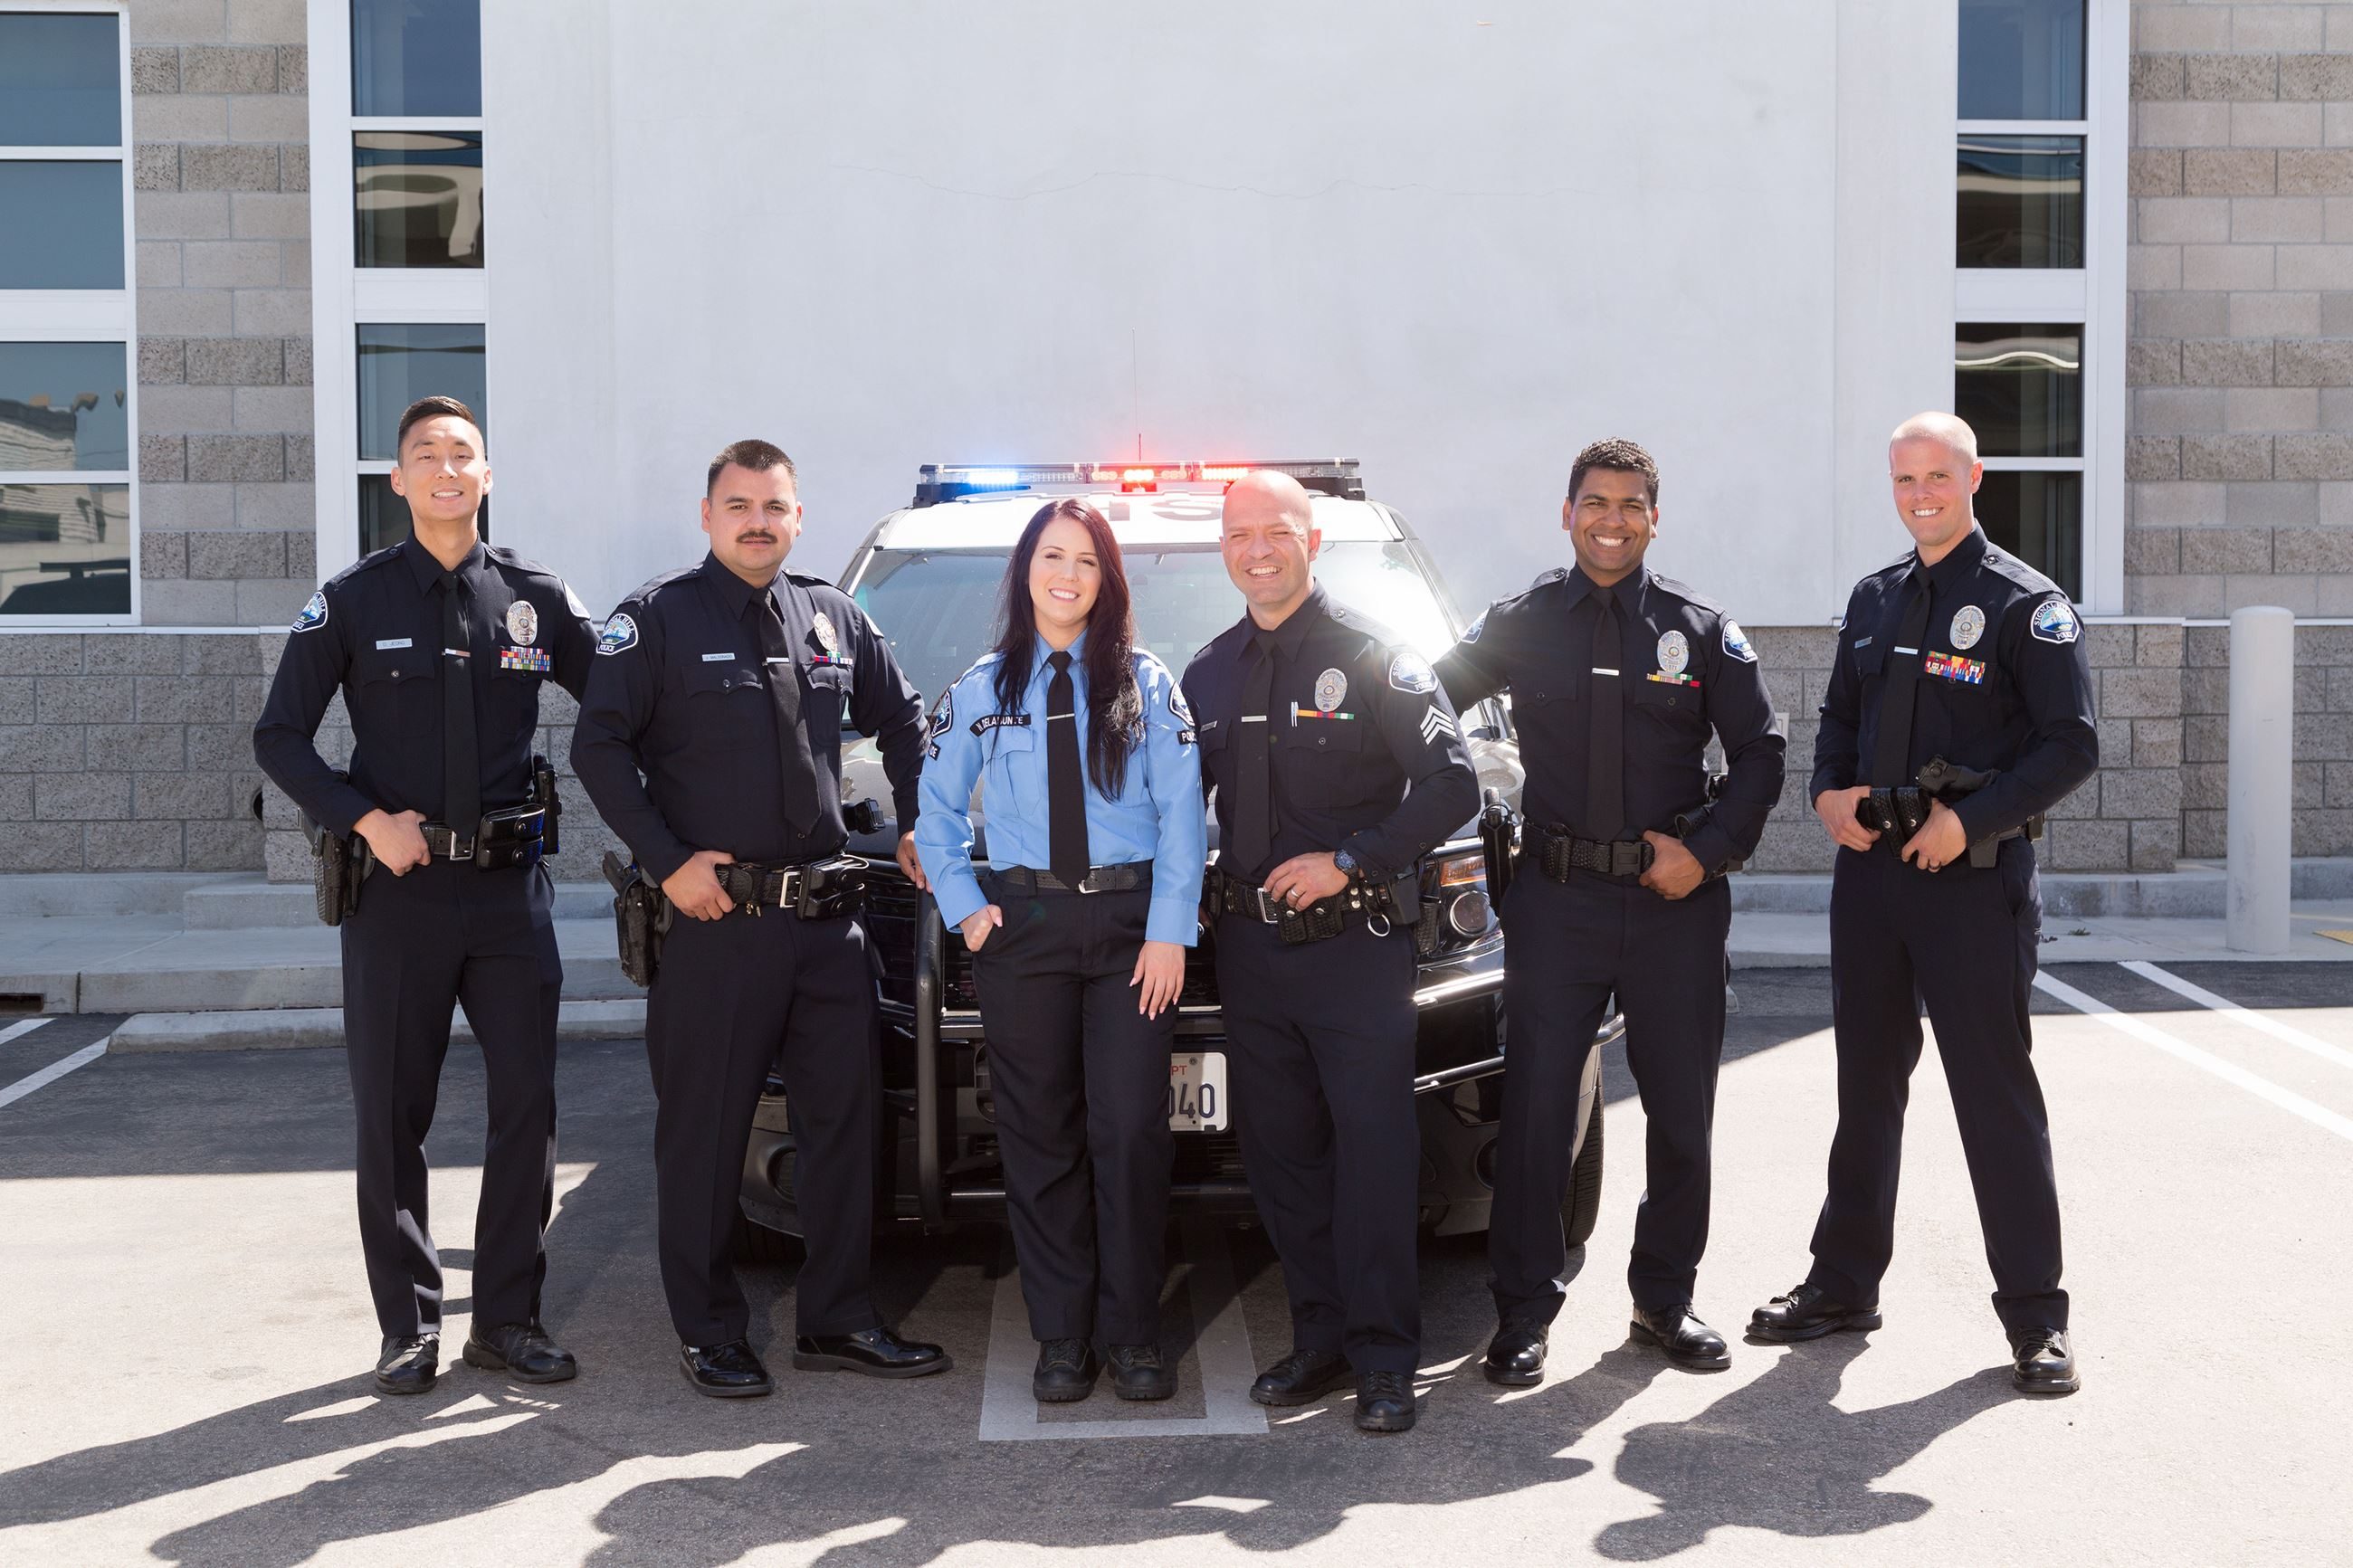 Police Officers Smiling in front of a police car